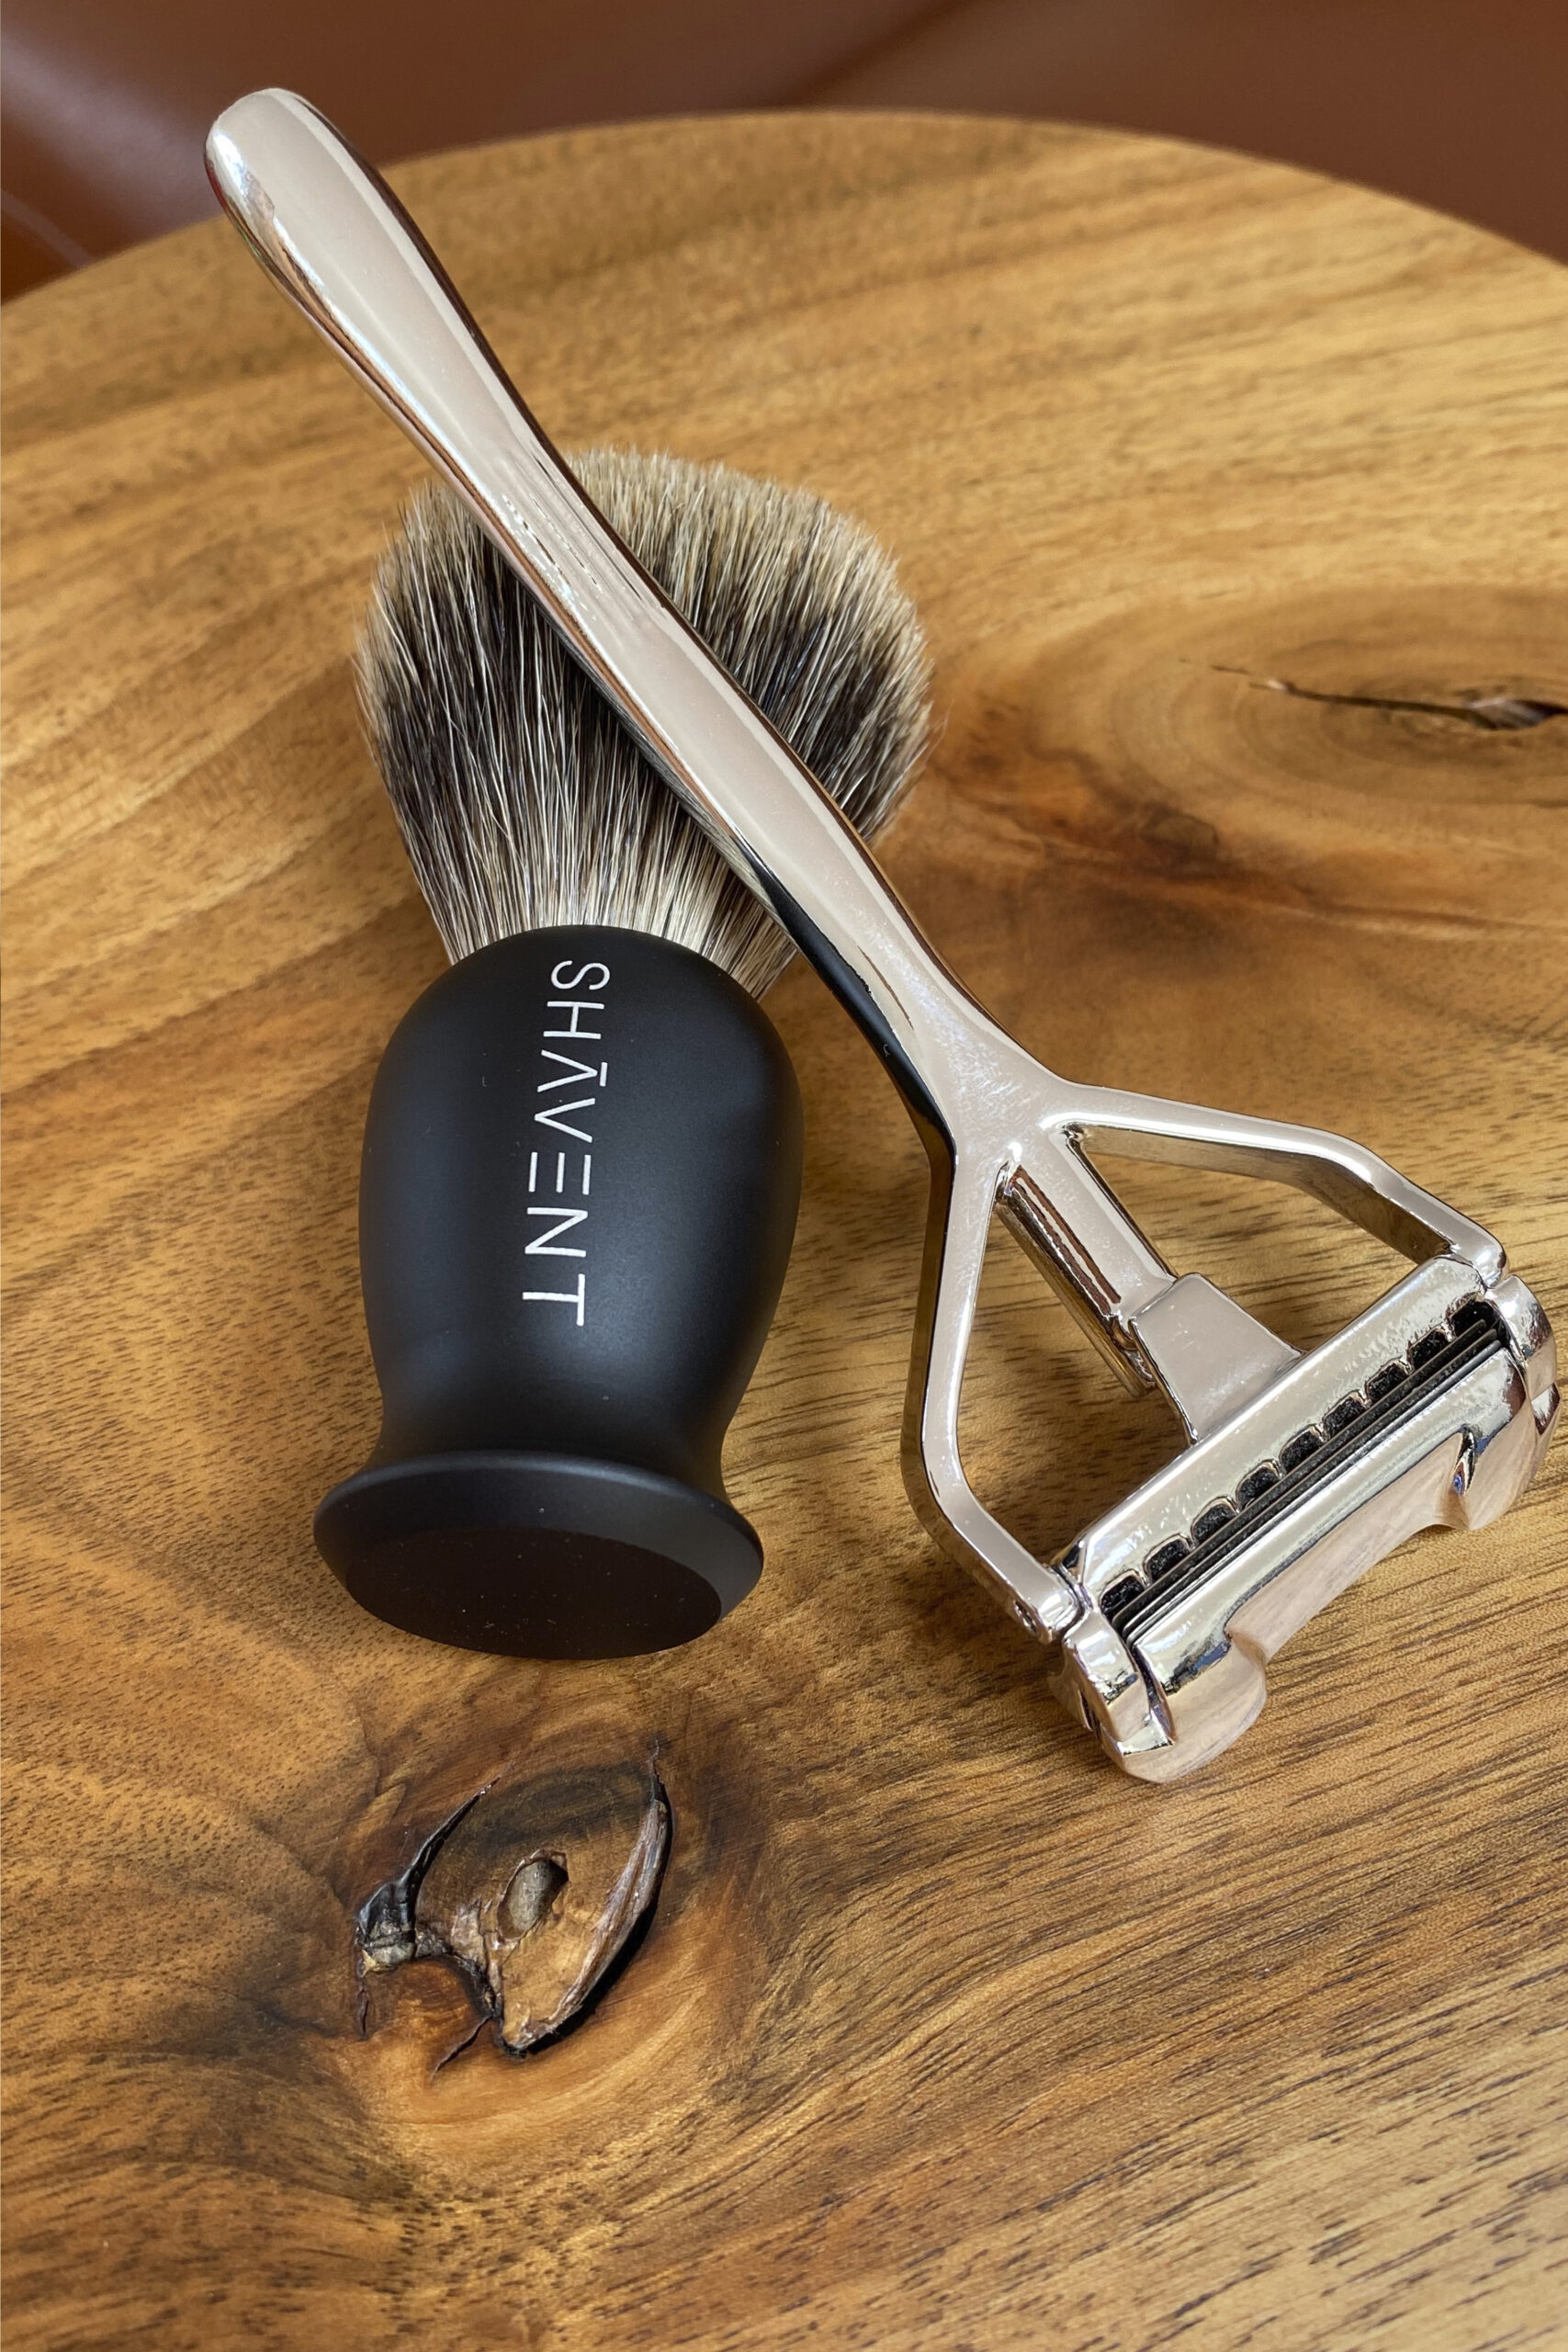 0_Shavent Product Pictures (4)